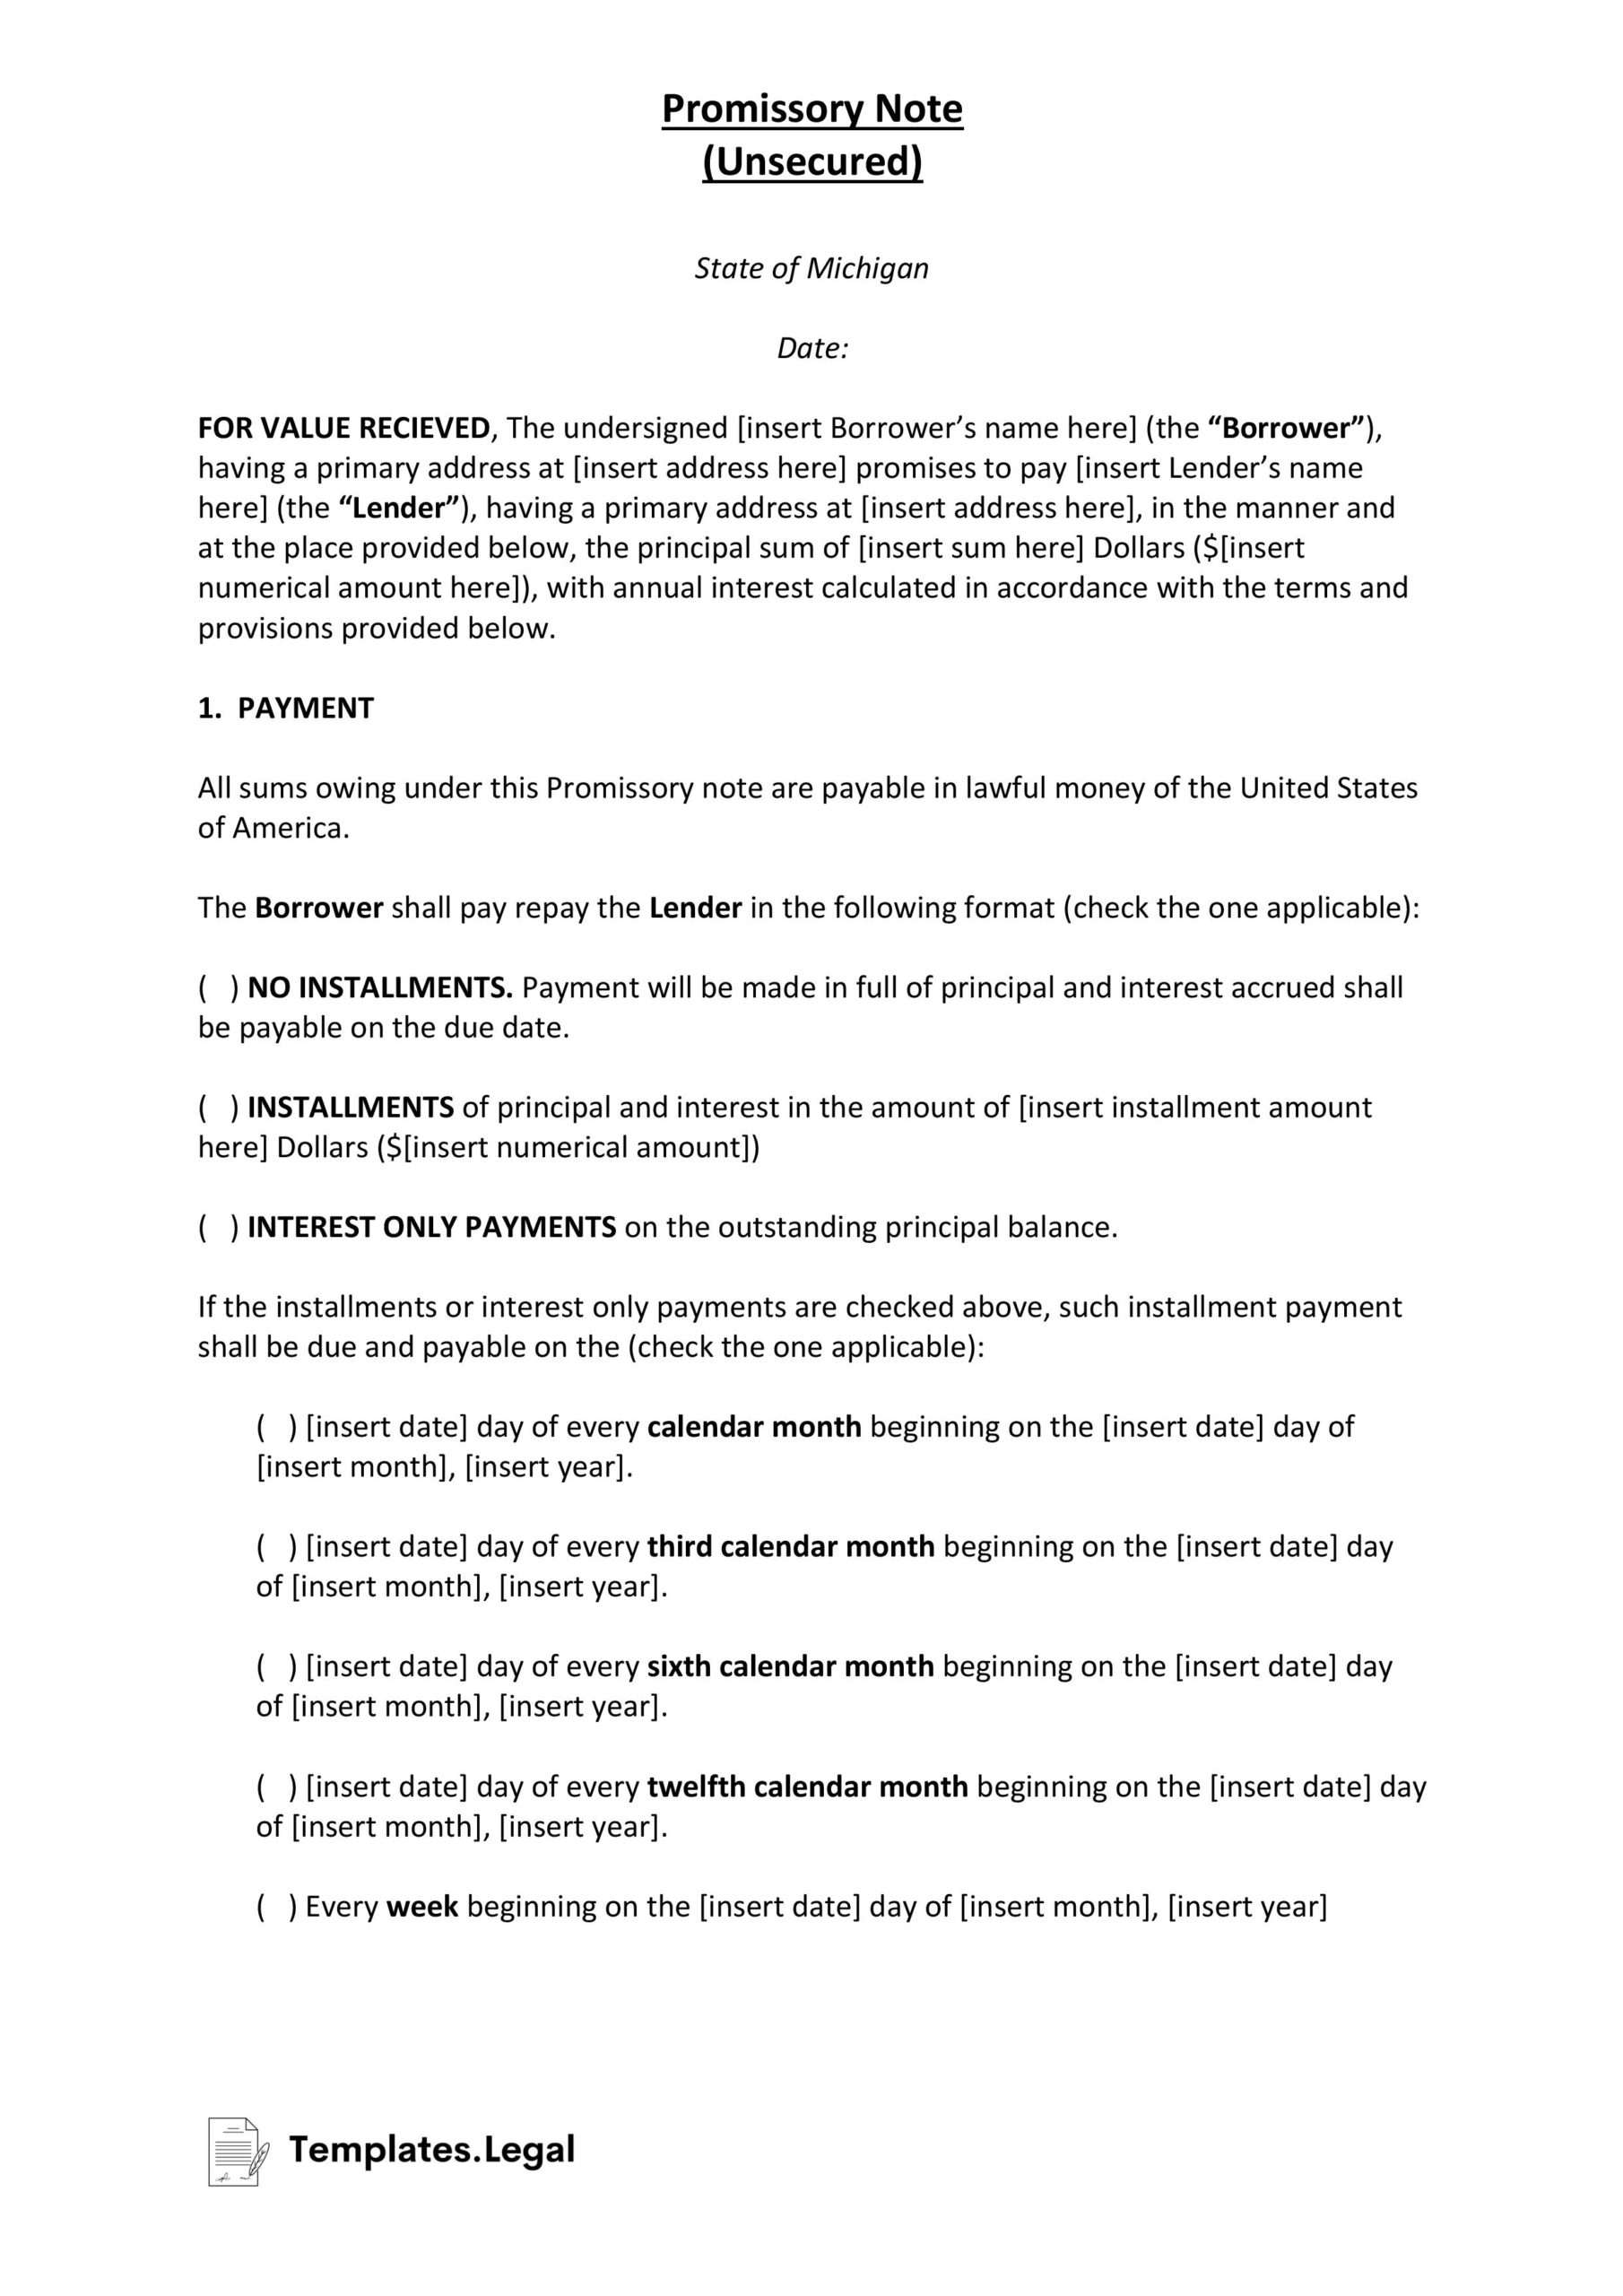 Michigan Unsecured Promissory Note - Templates.Legal